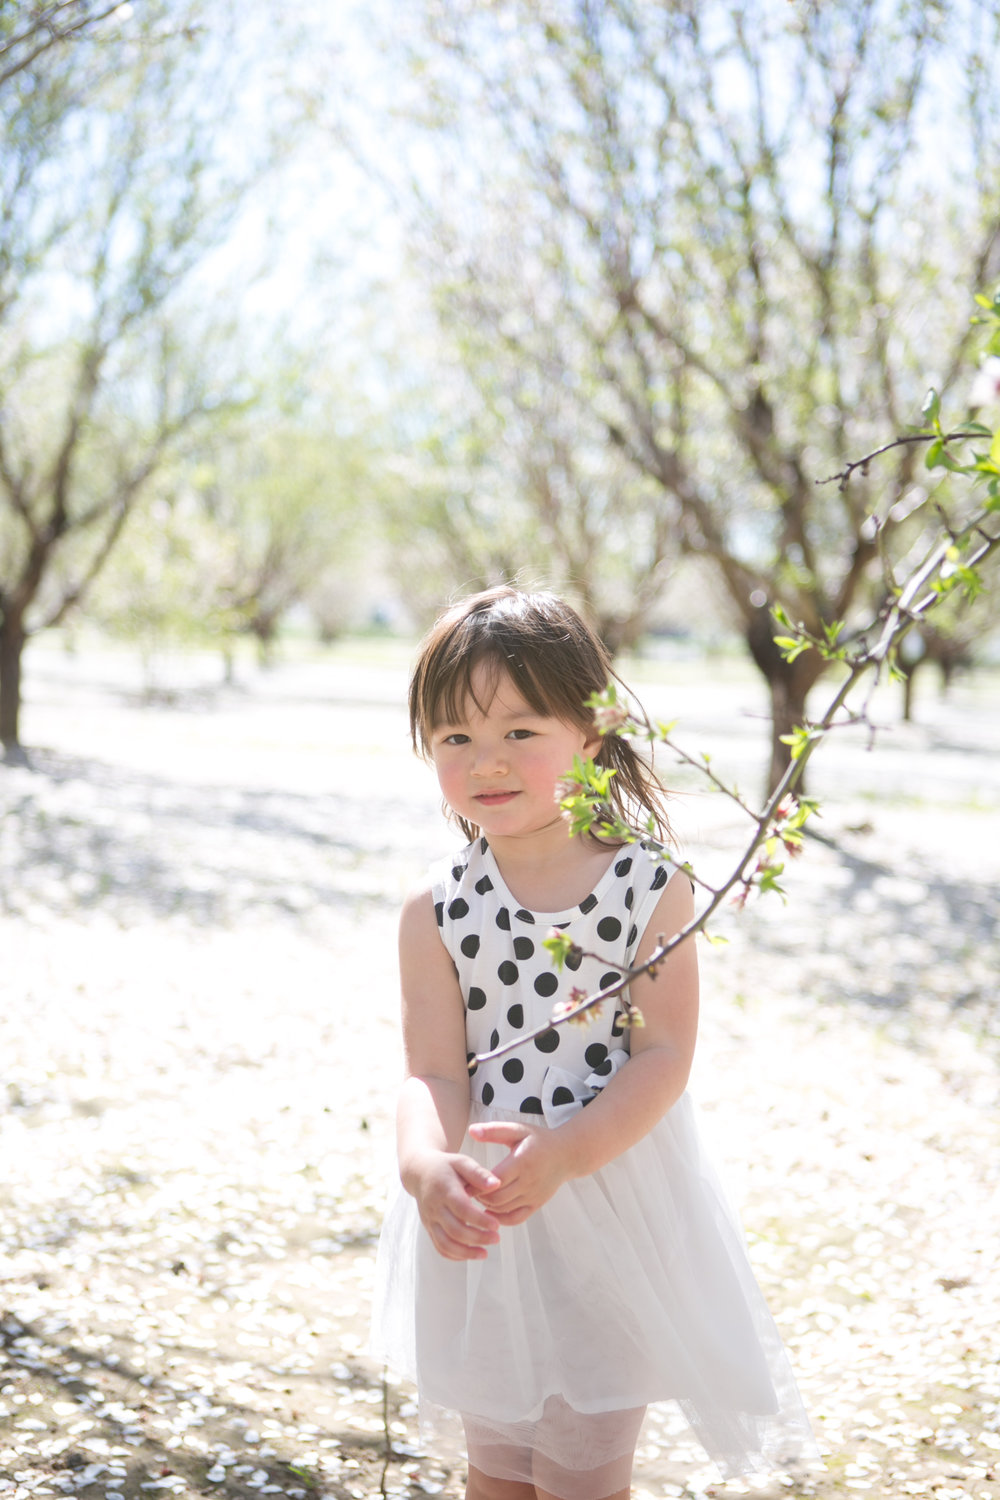 Roseville Family Photographer Lifestyle Family Photography - Michelle Chang Photography